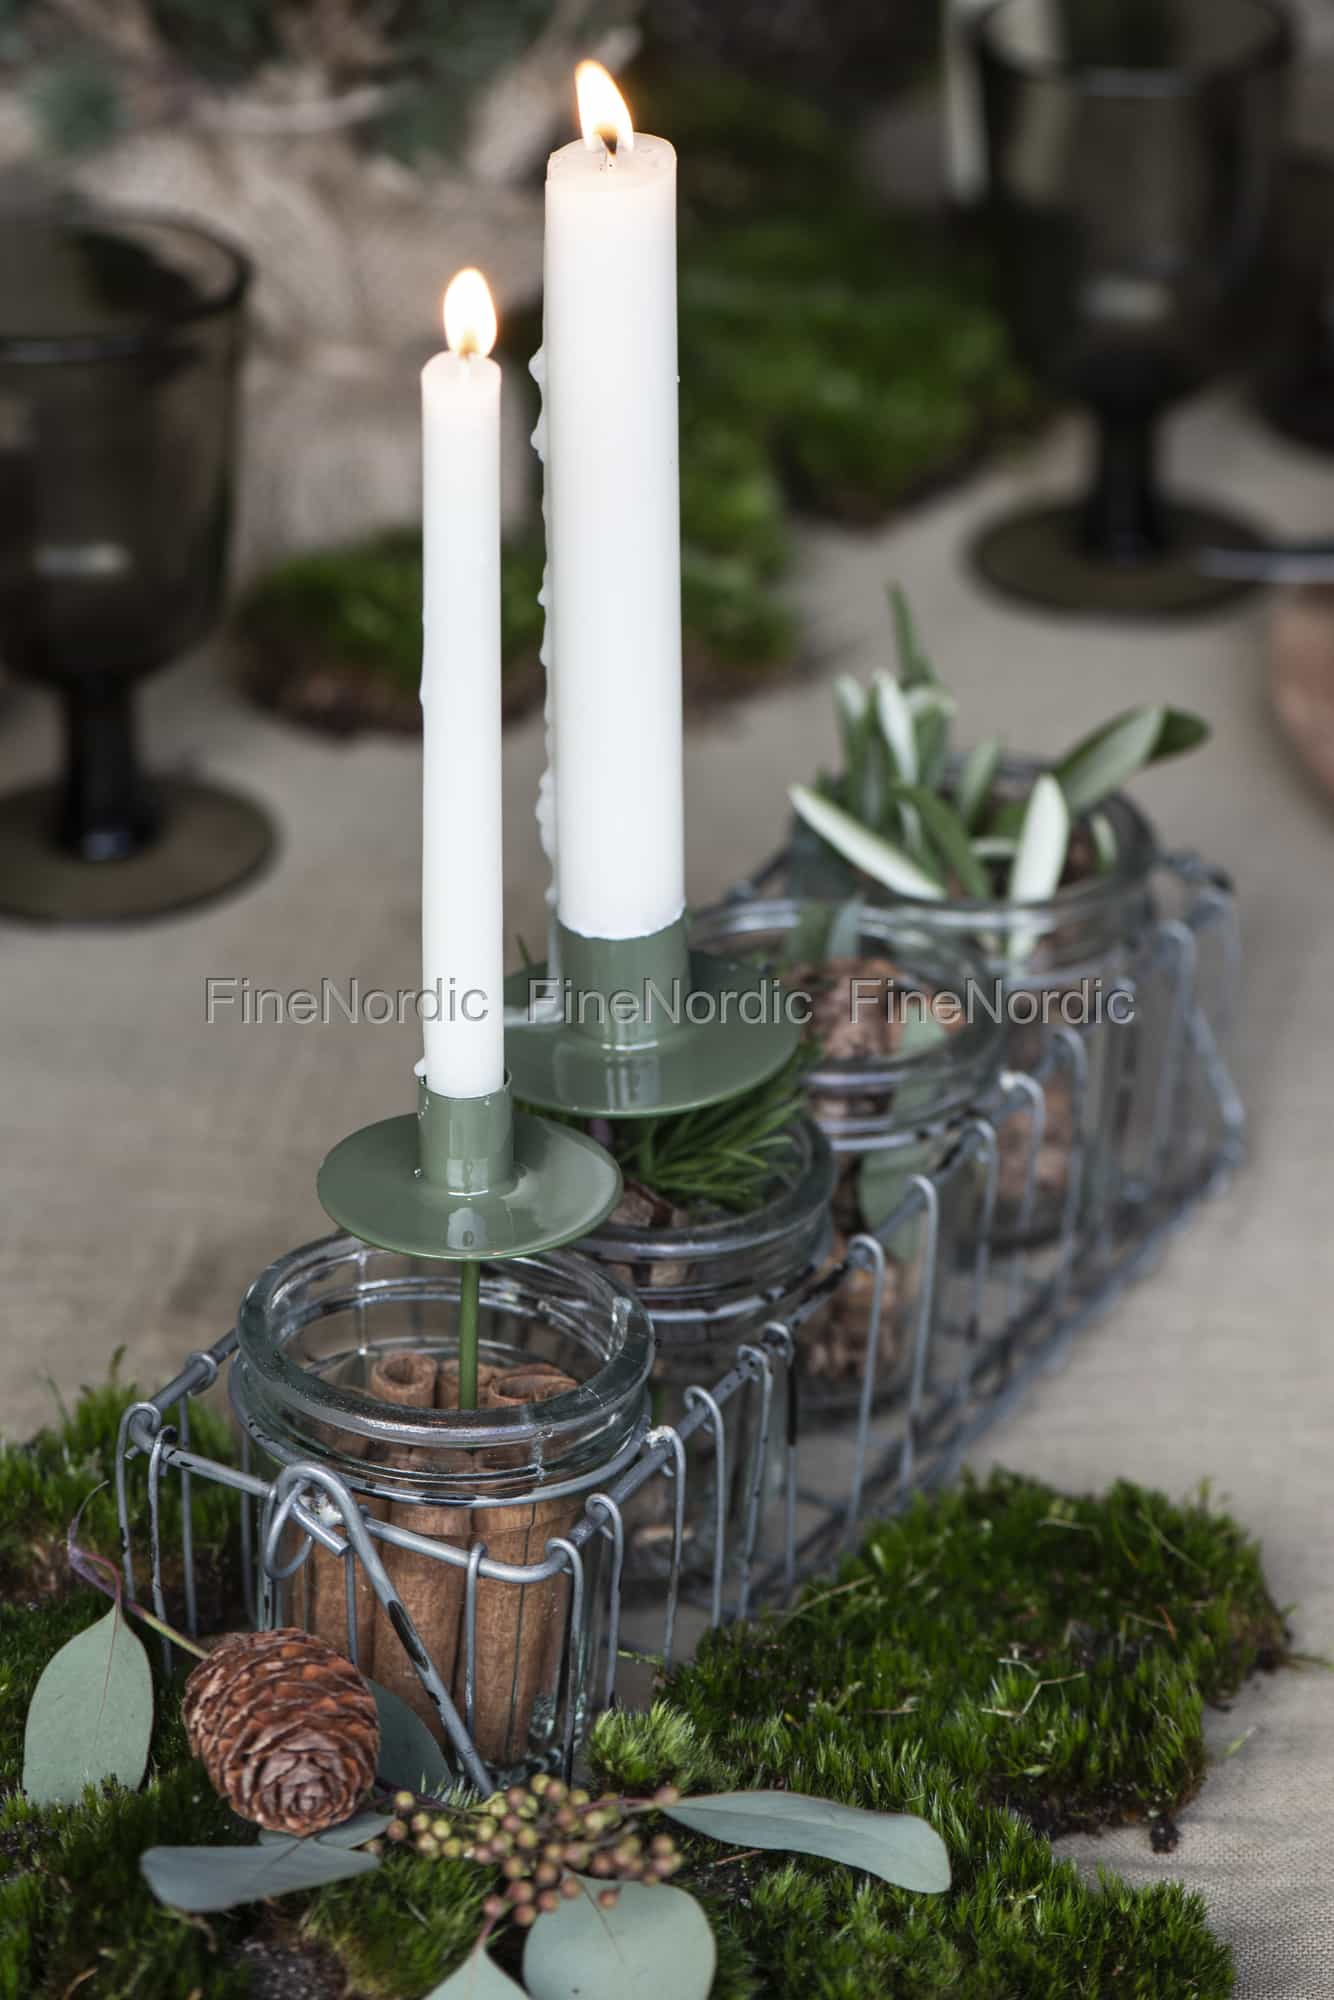 Ib Laursen Advent Candle Holder With 4 Glass Holders For Tealights Wire Basket